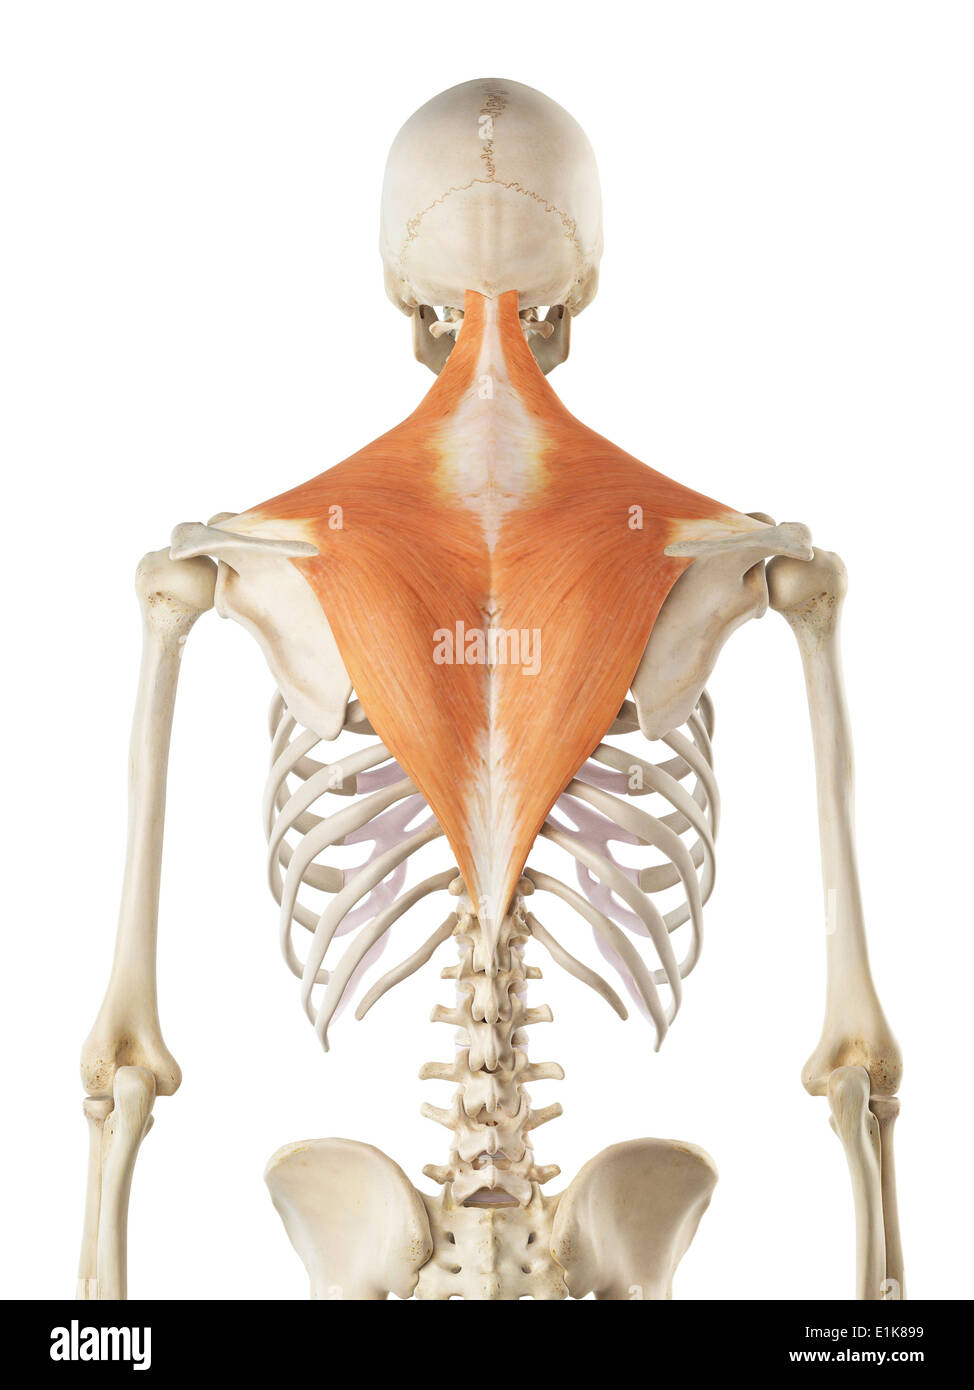 Trapezius Muscles Stock Photos & Trapezius Muscles Stock Images - Alamy